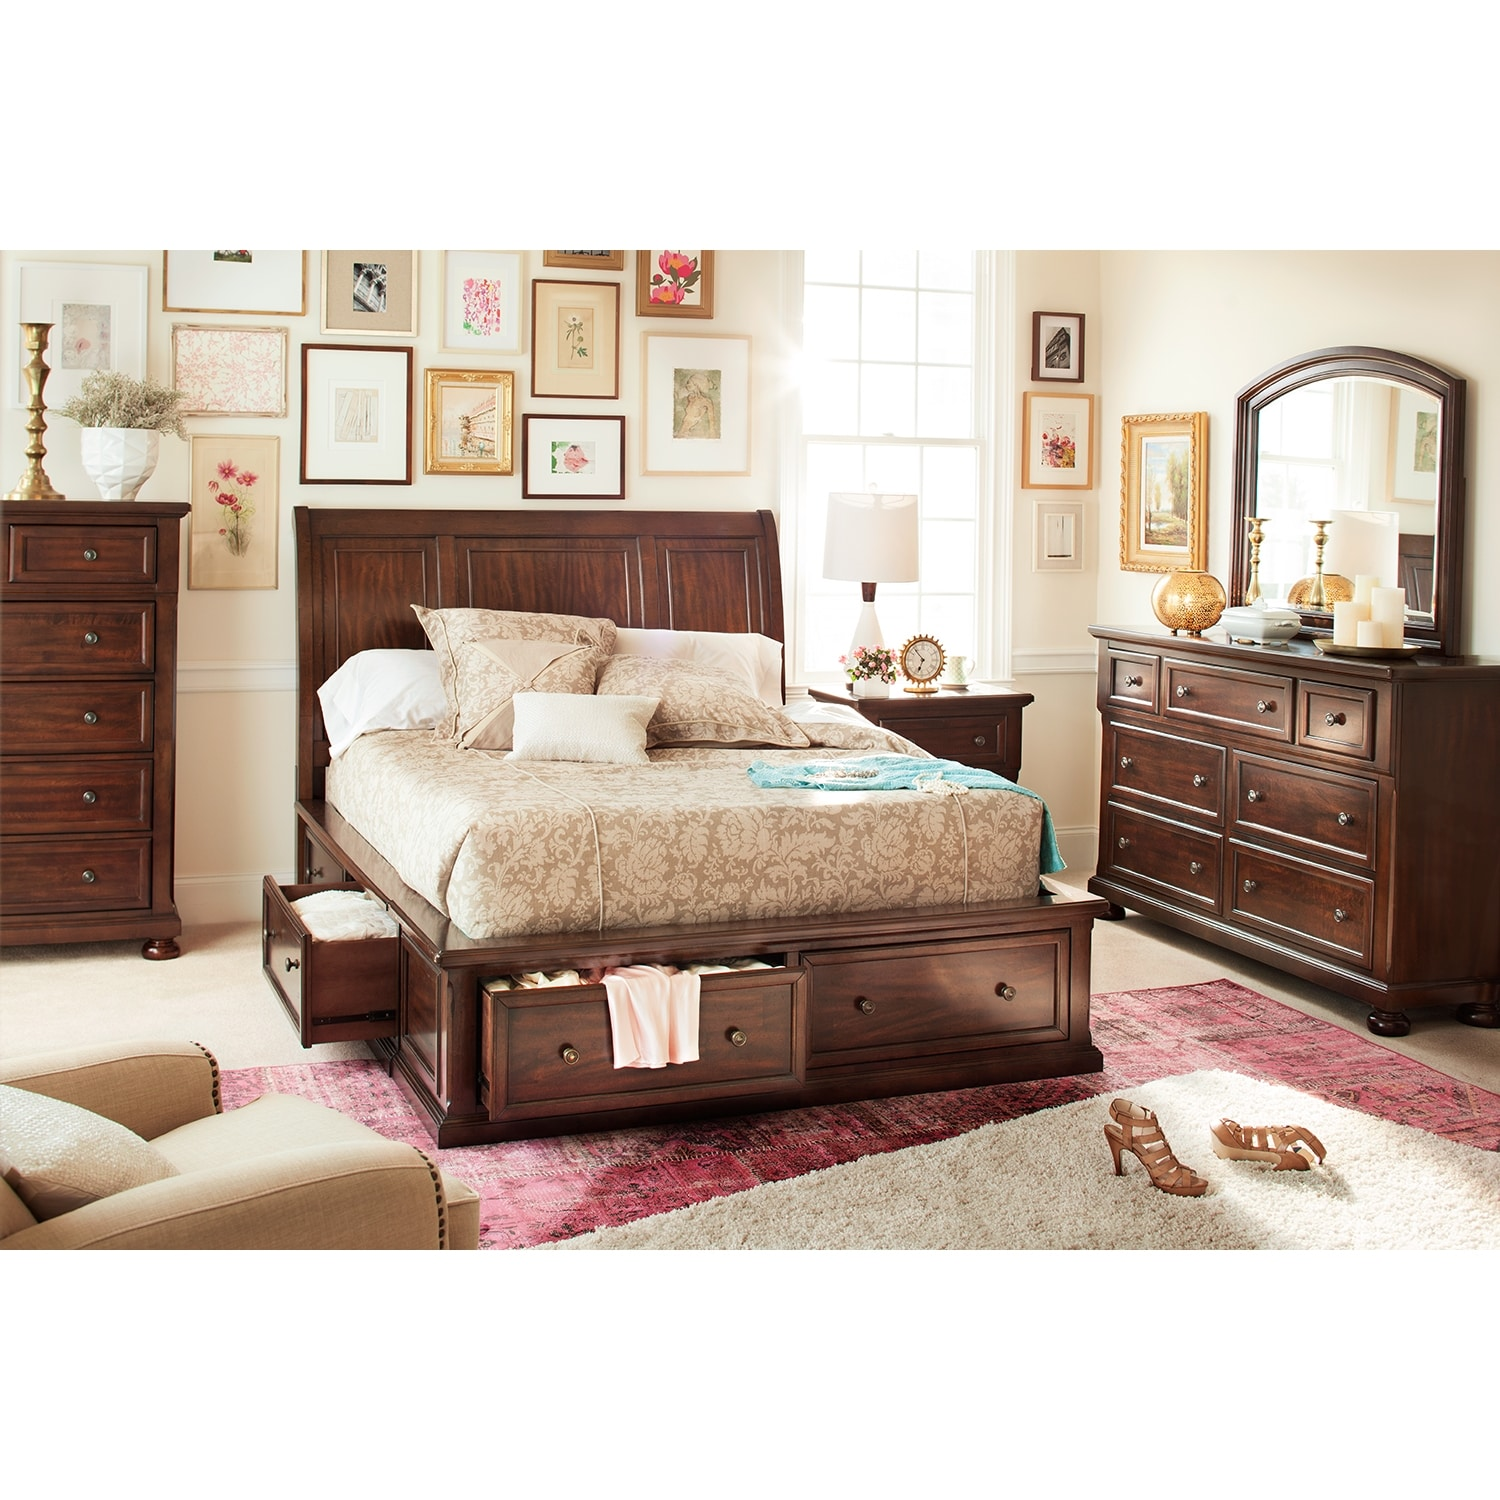 Hanover 7-Piece King Storage Bedroom Set